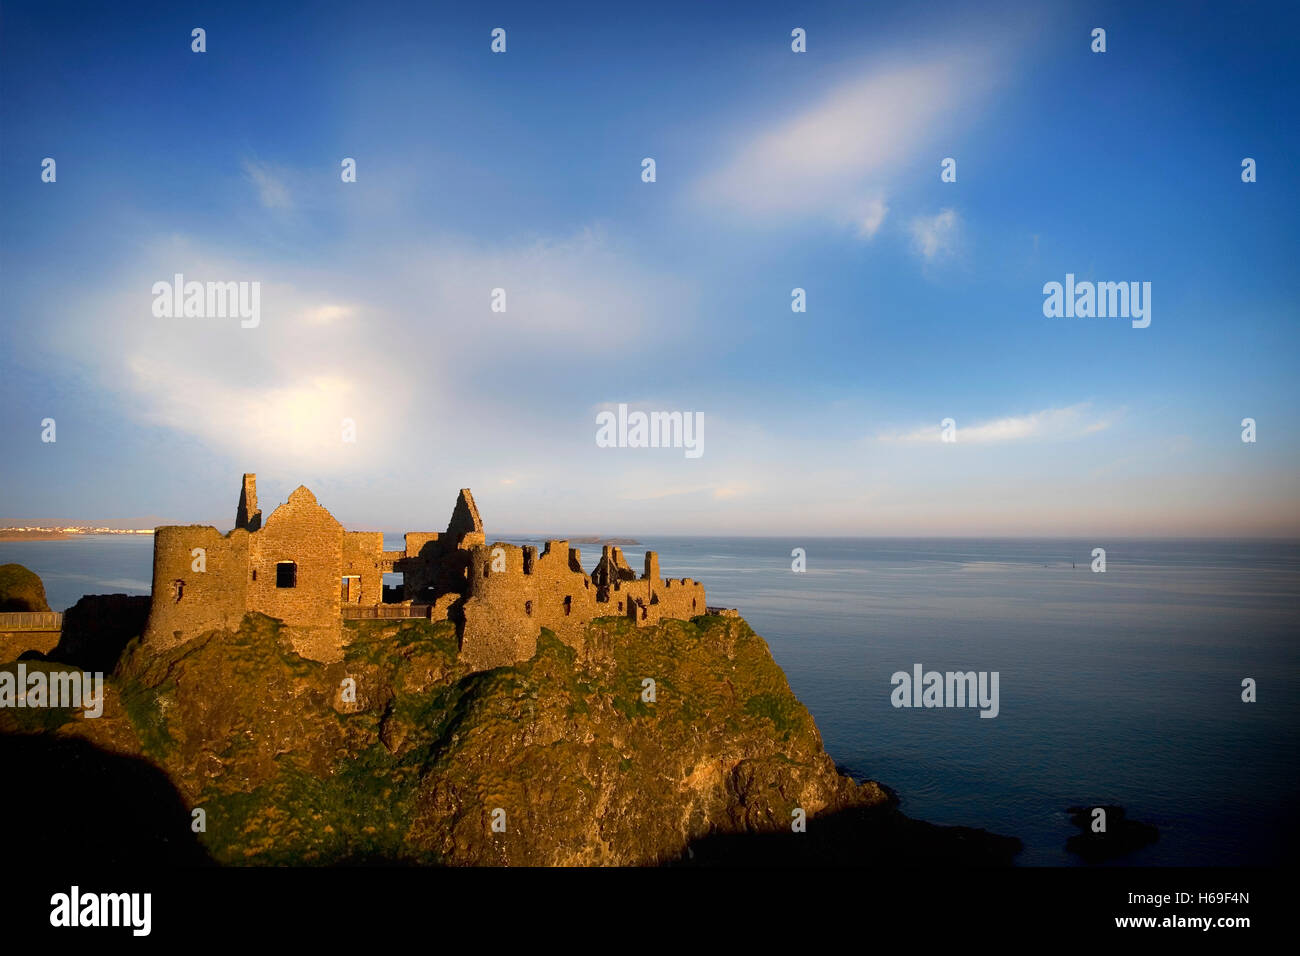 Ruined medieval Dunluce Castle, located on the edge of a basalt outcrop between Portballintrae and Portrush, County - Stock Image